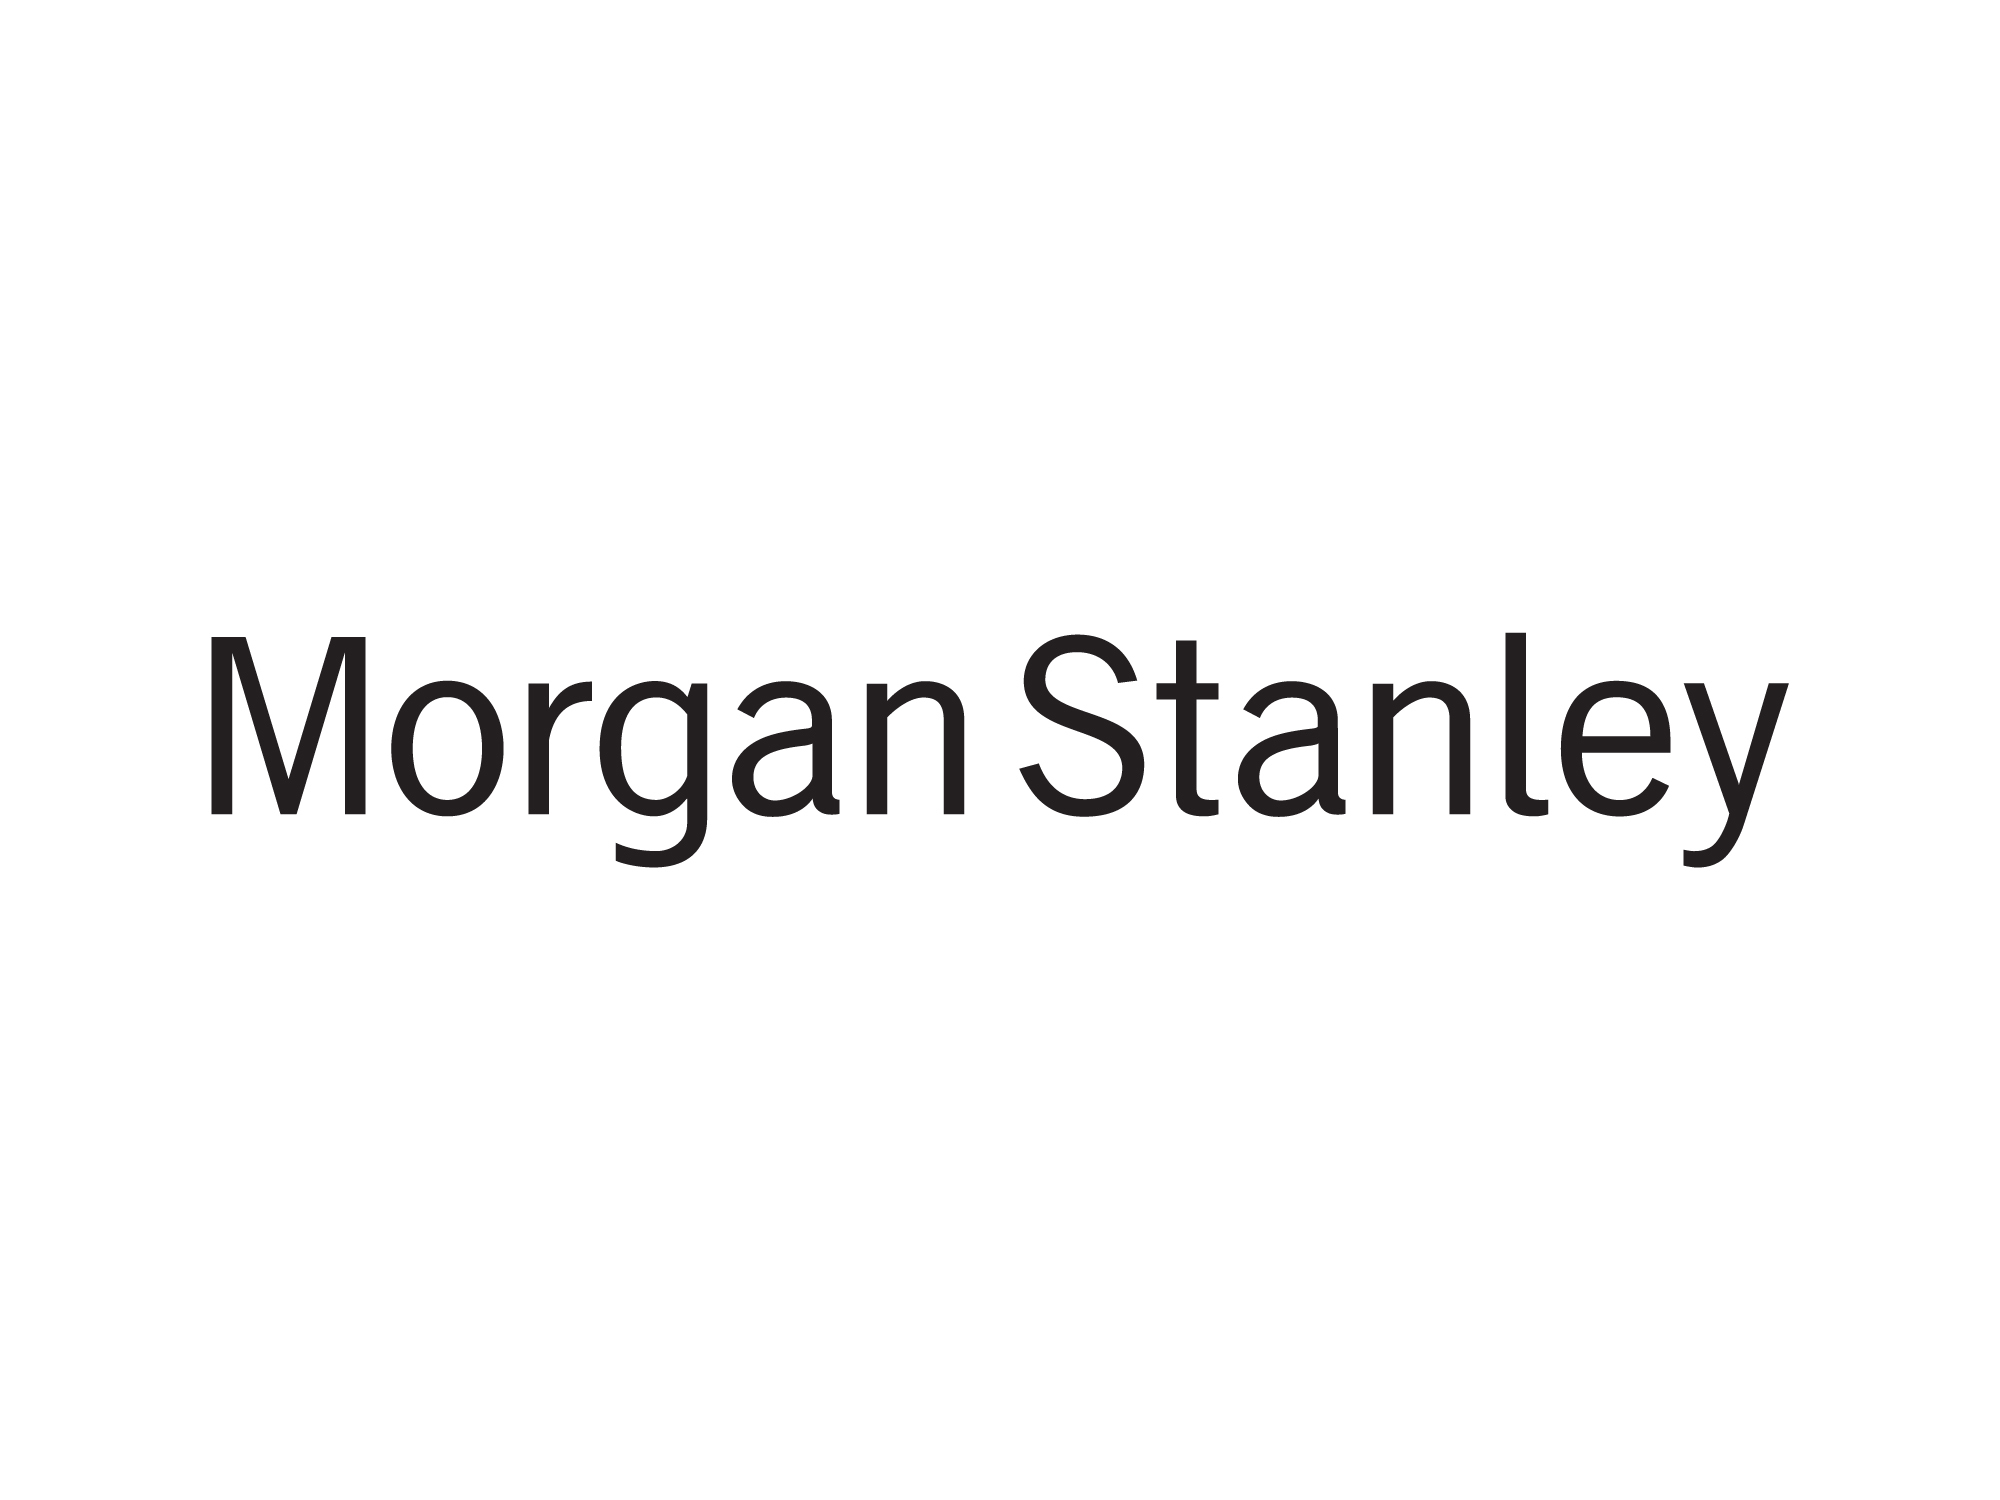 Morgan Stanley To Buy Citi S Smith Barney Stake Cbs News